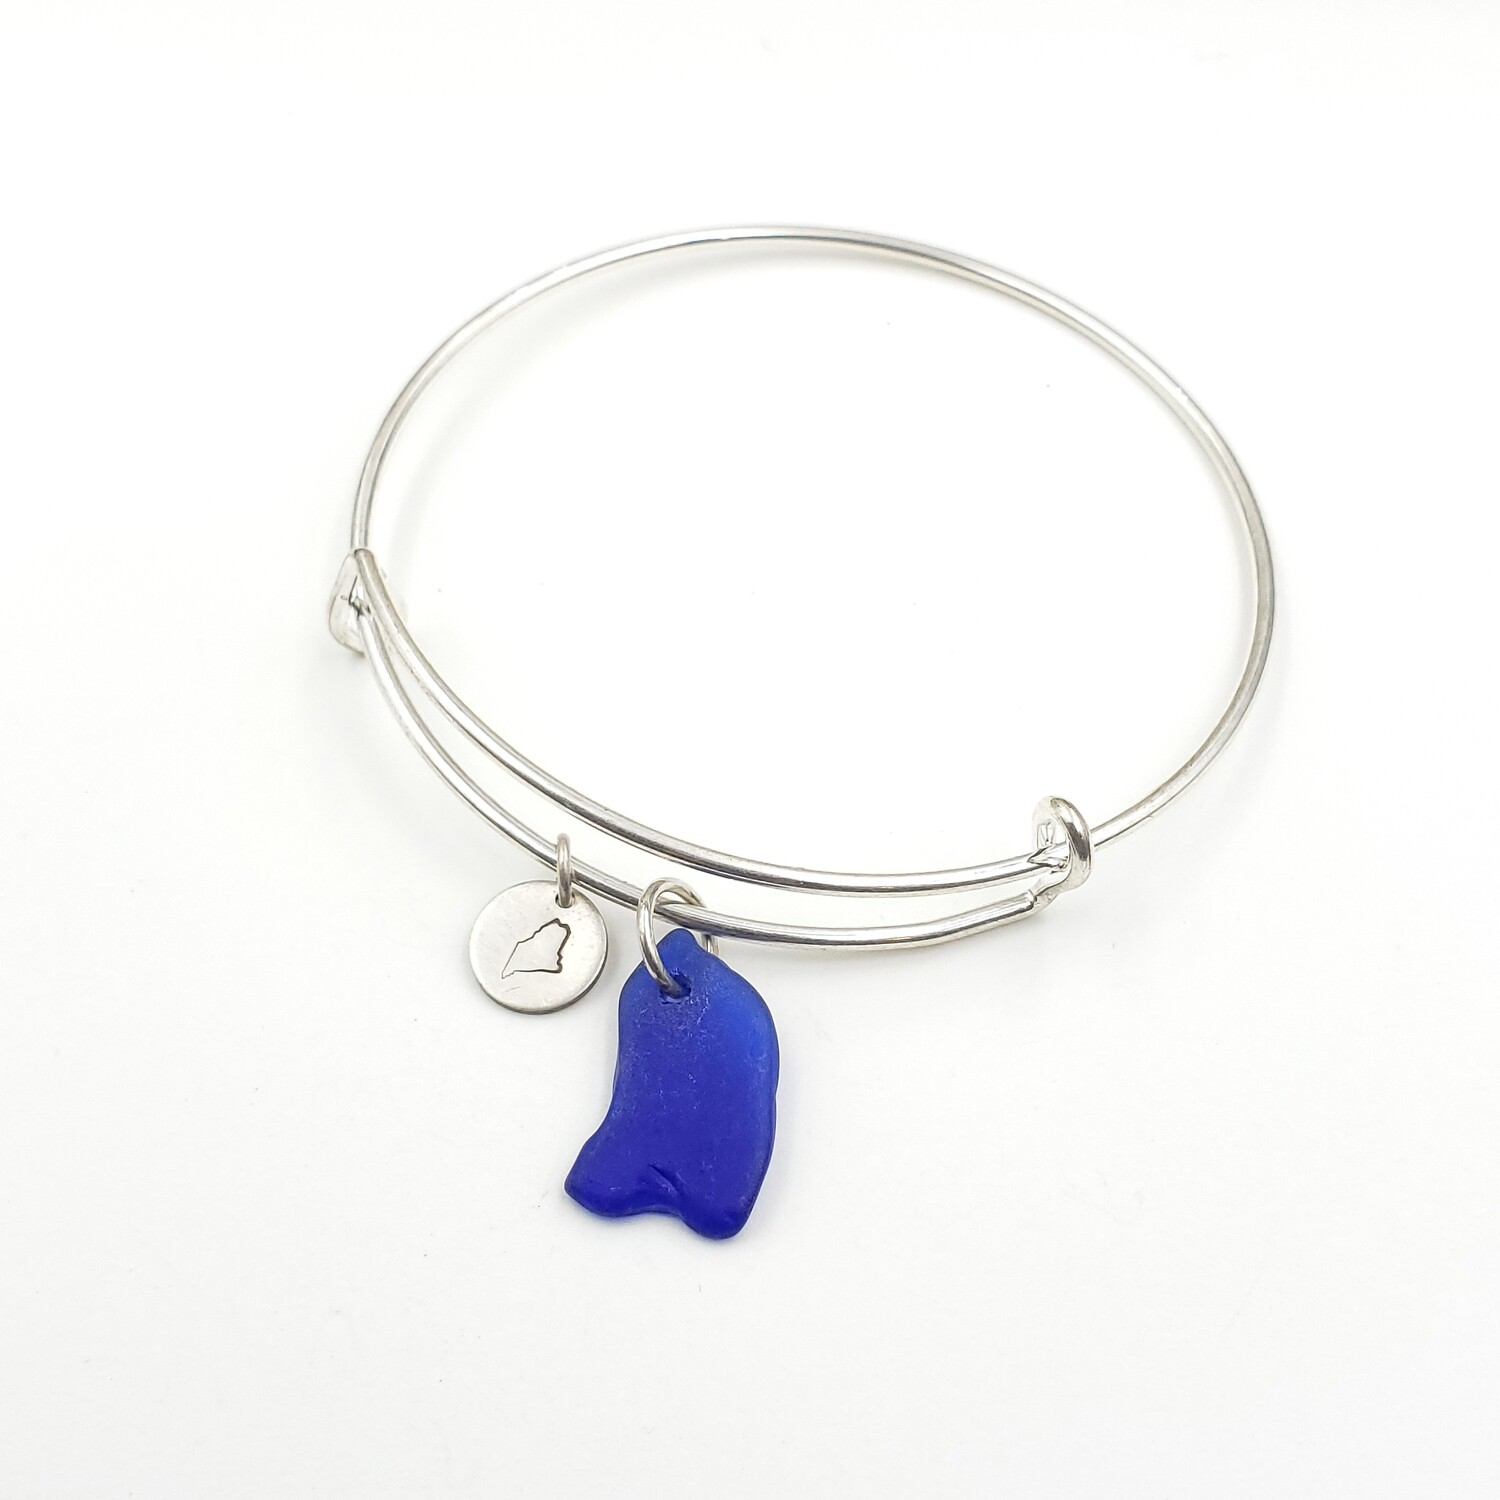 Bangle Bracelet with Stamped State of Maine Charm and Cobalt Blue Maine Sea Glass